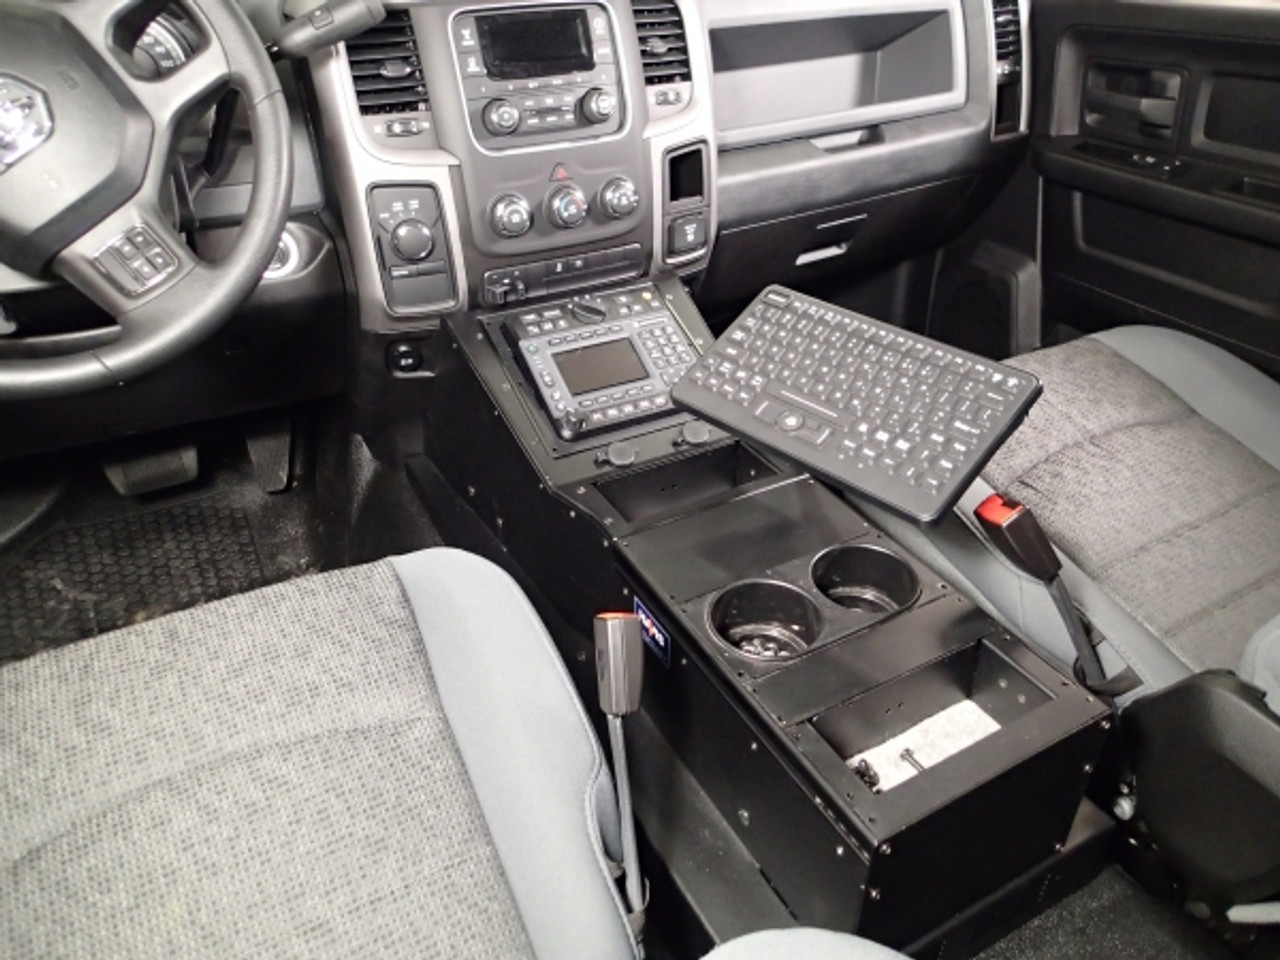 Flex Arm Package for Tablet or Keyboard Mounting For 2013-2016 Dodge Ram by  Havis